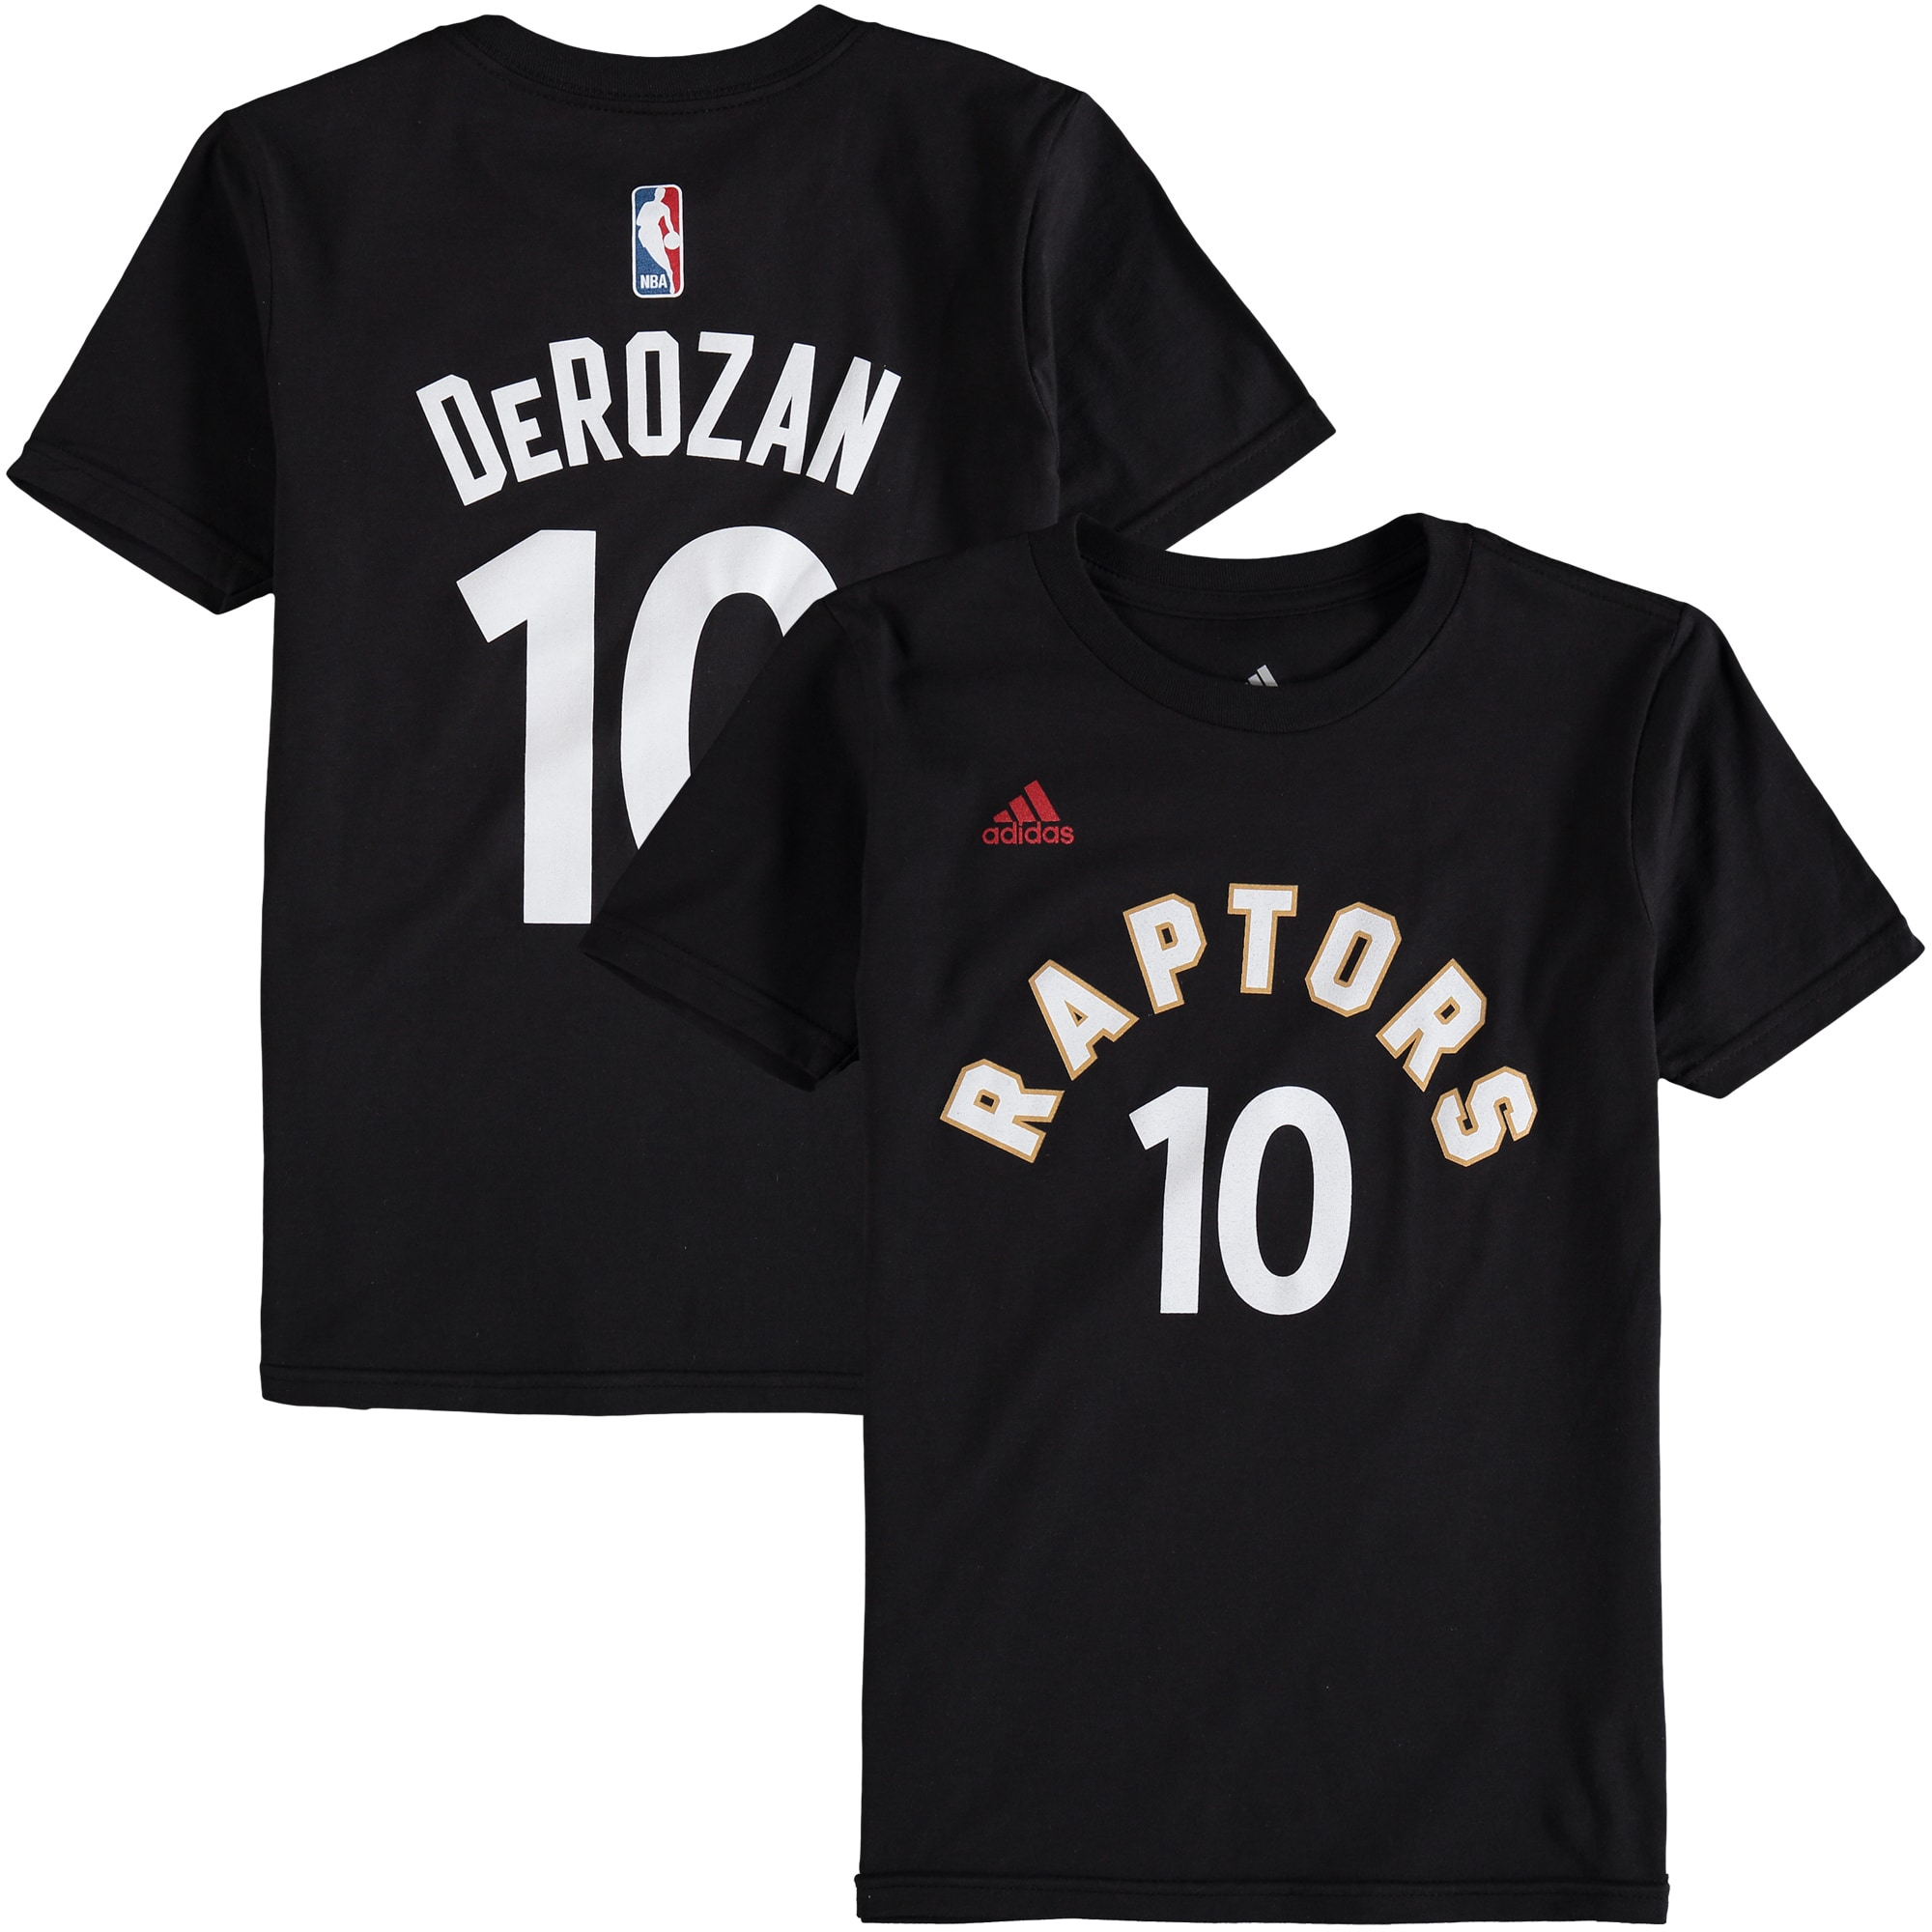 DeMar DeRozan Toronto Raptors adidas Youth Game Time Flat Name & Number T-Shirt - Black